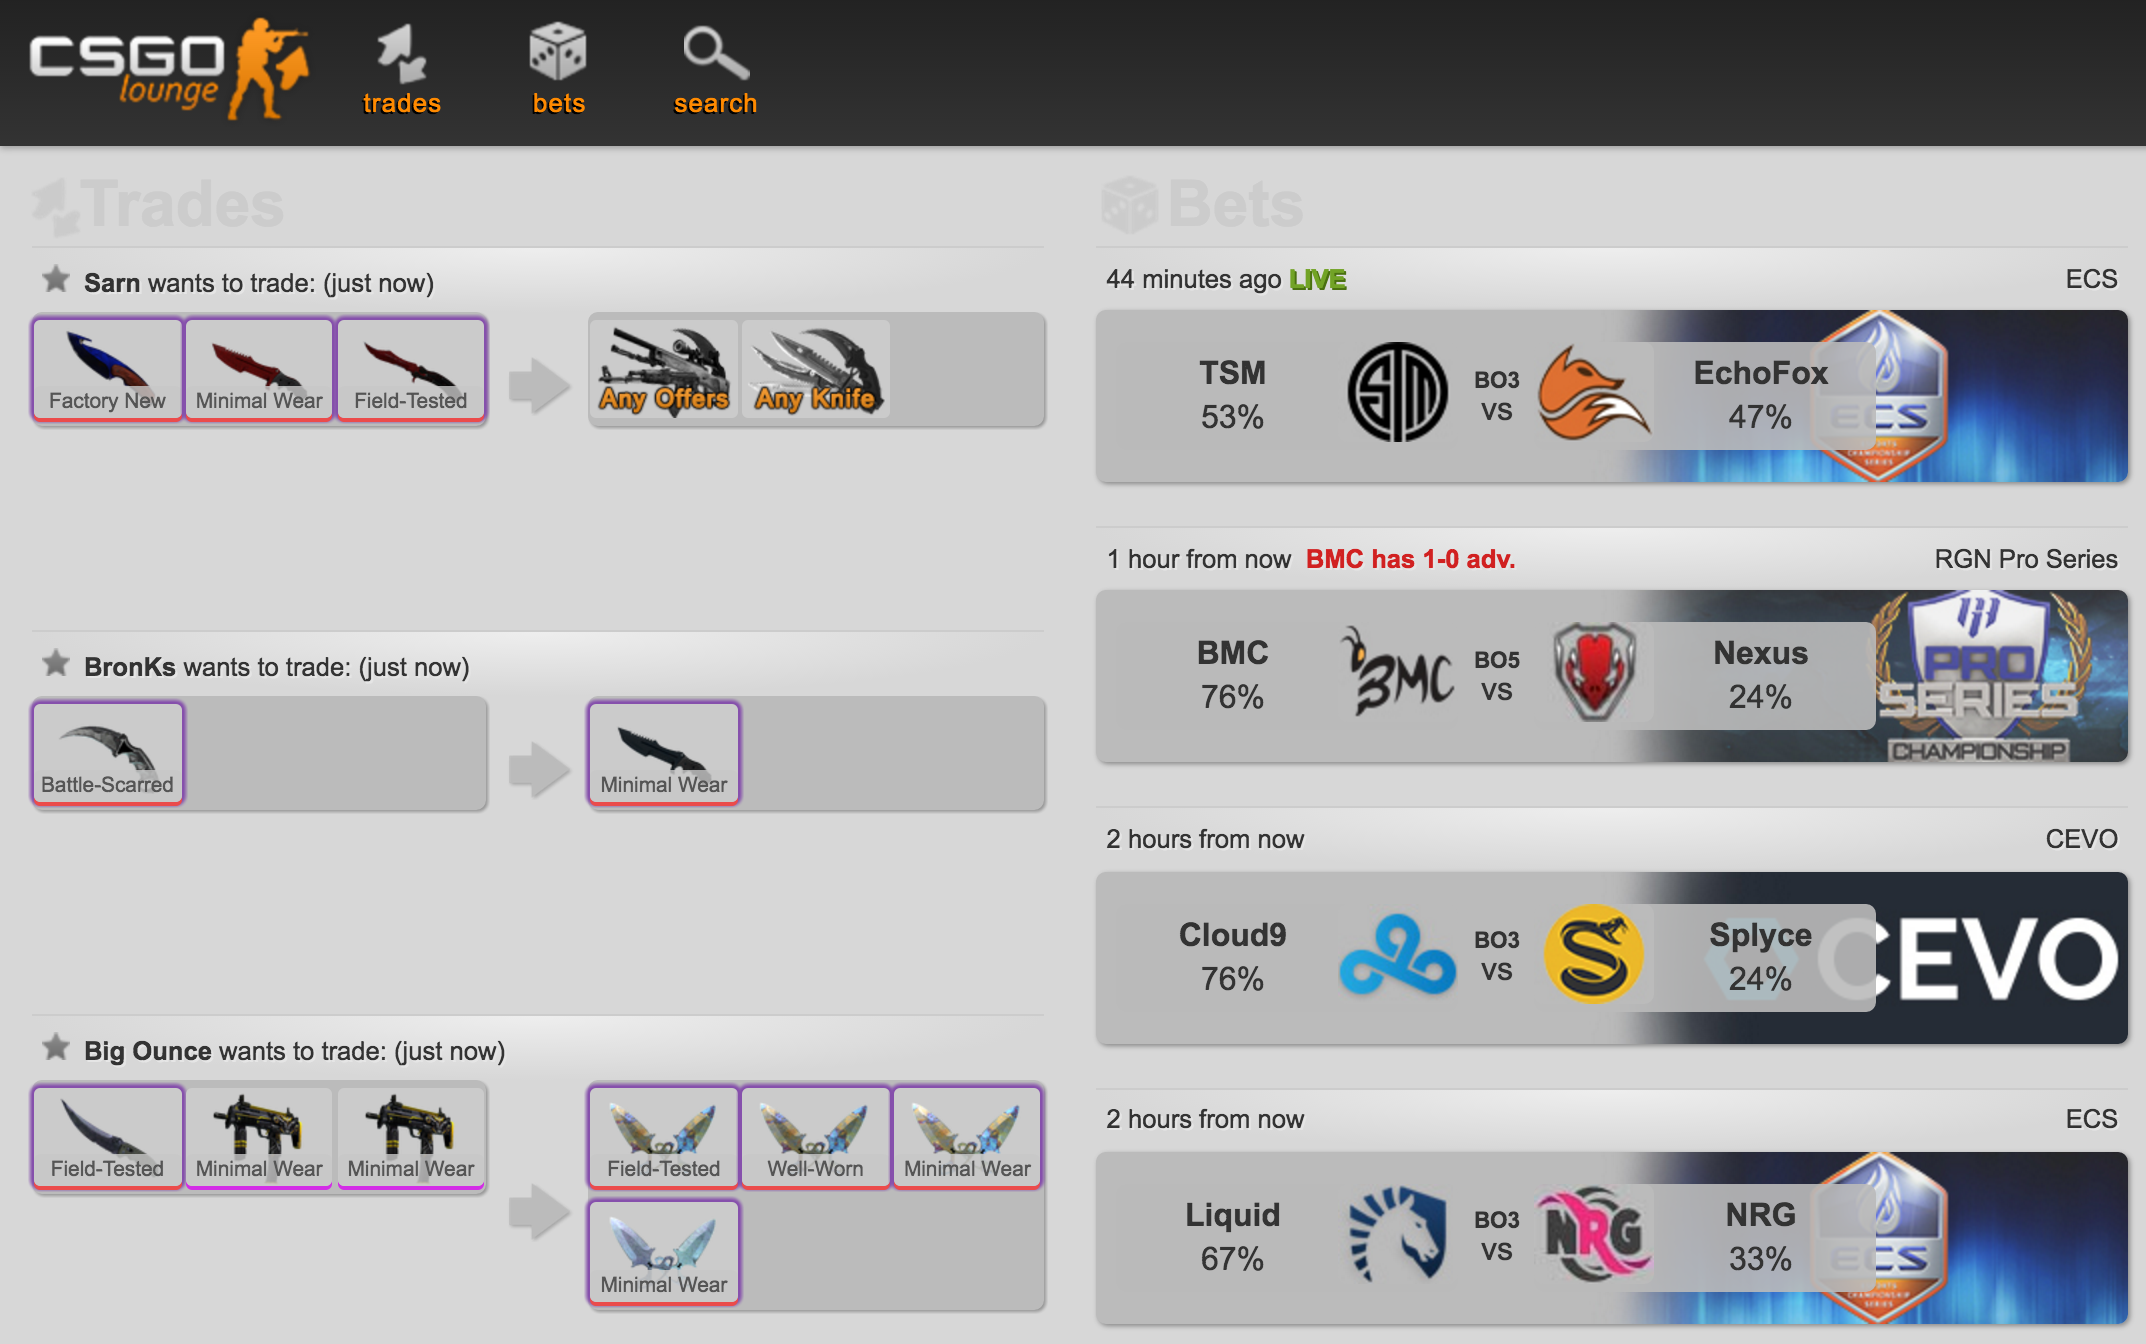 Bets and trade proposals on the website CSGO Lounge